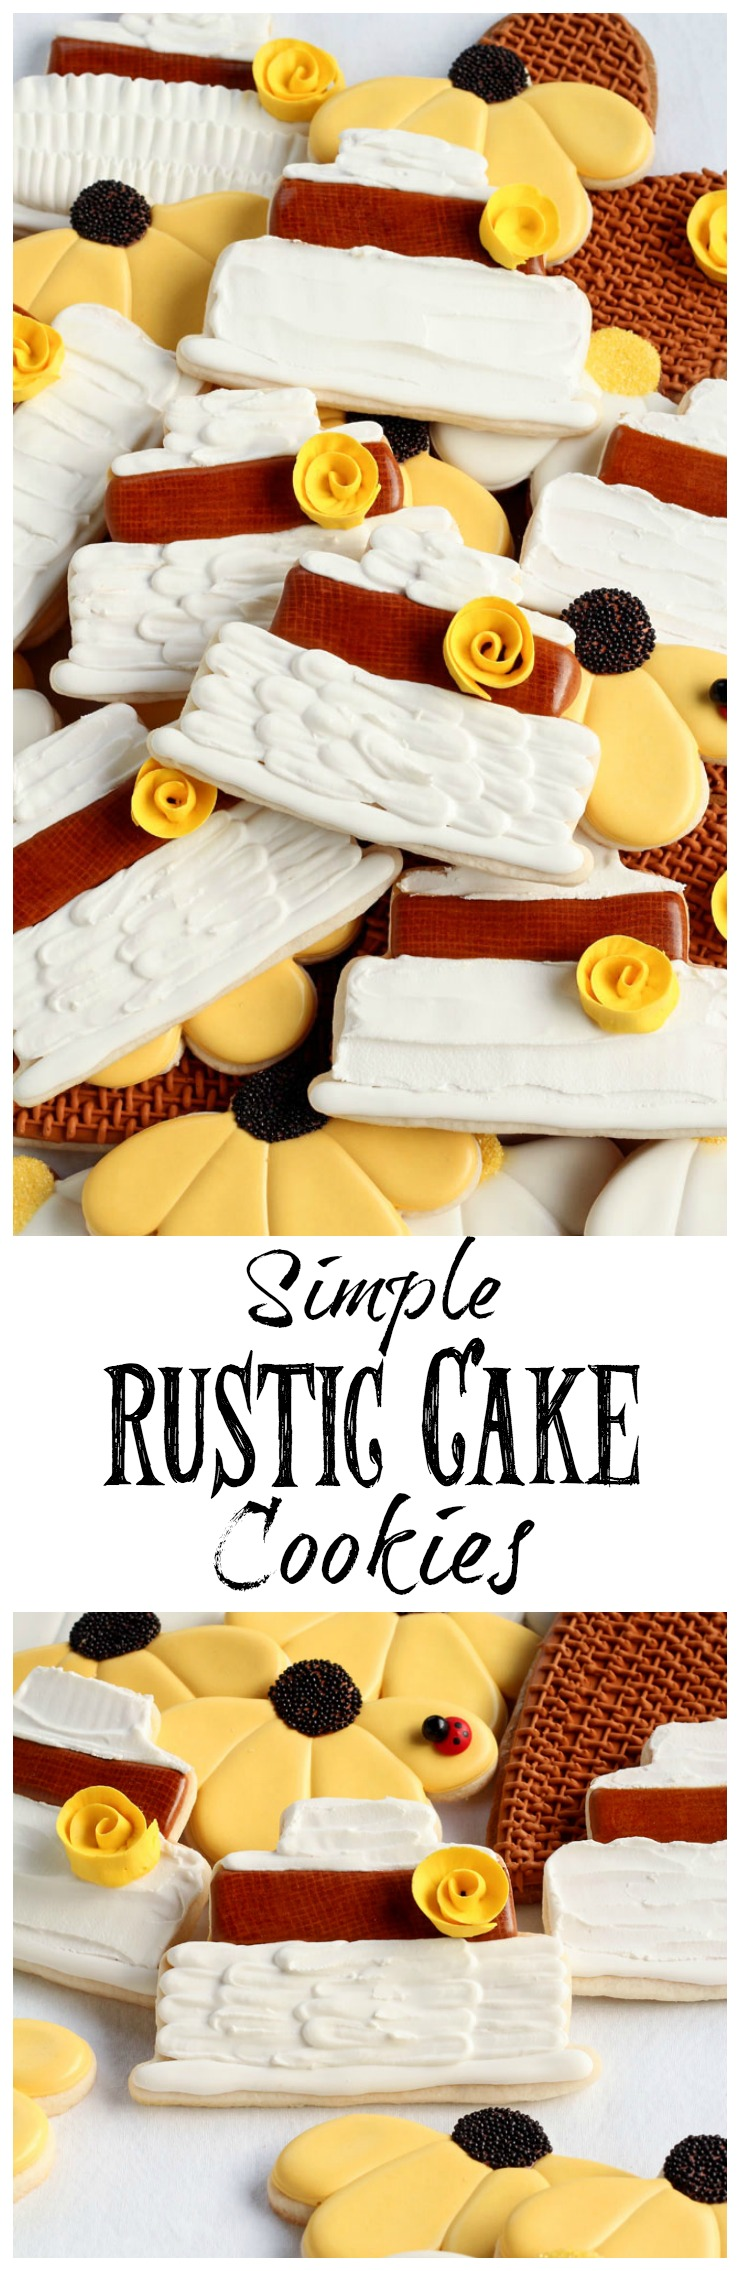 How to Make Rustic Cake Cookies via www.thebearfootbaker.com